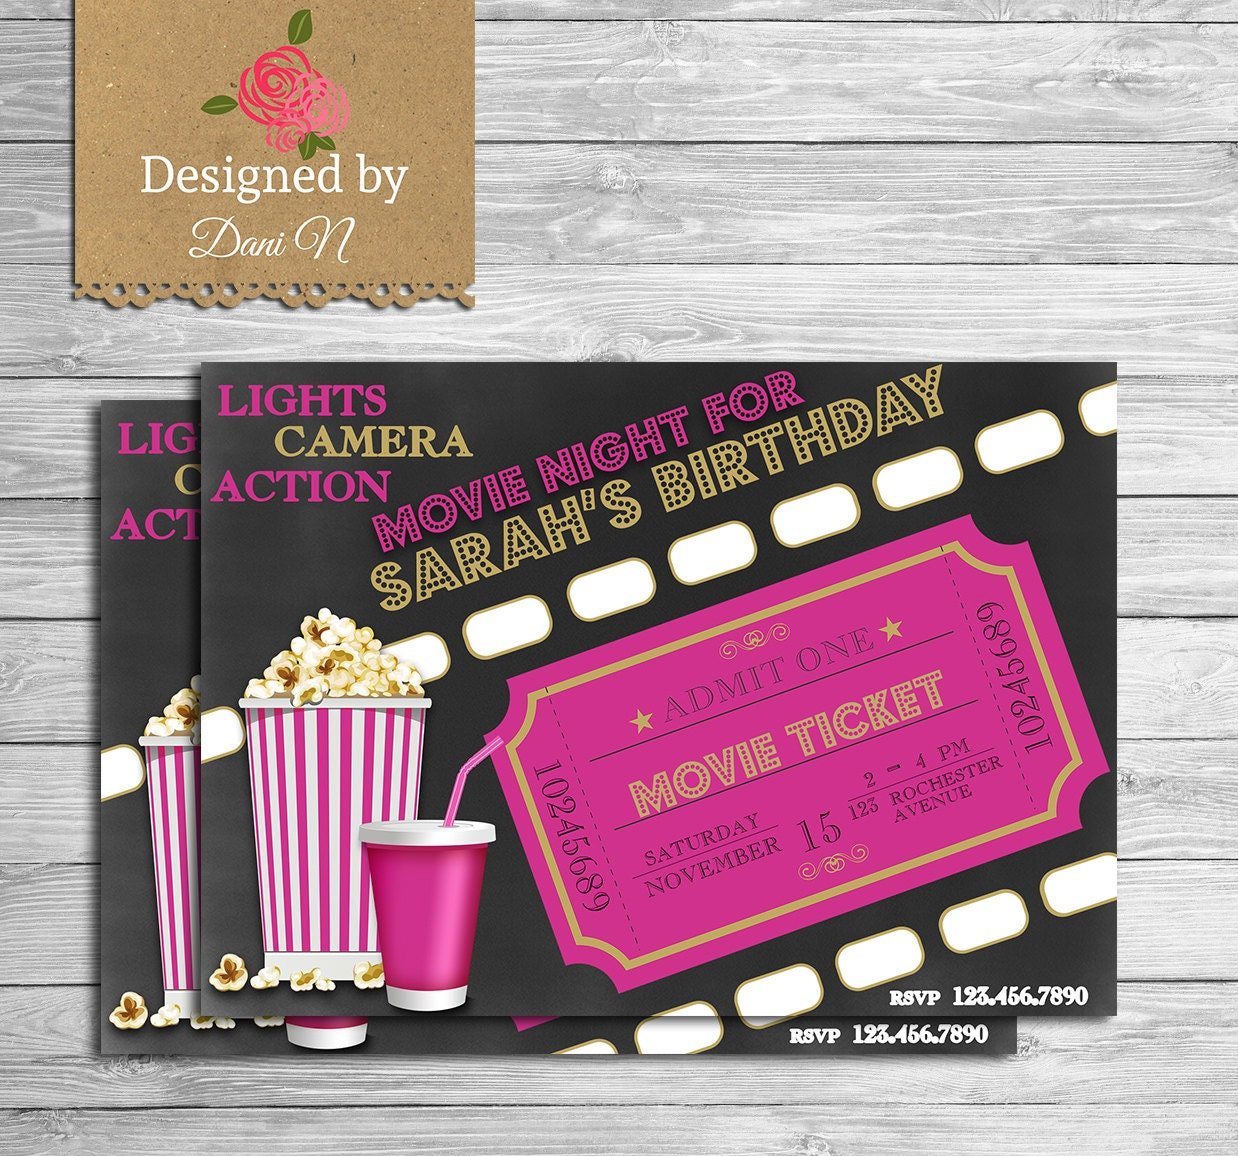 movie night party invitation template free - Picture Ideas References